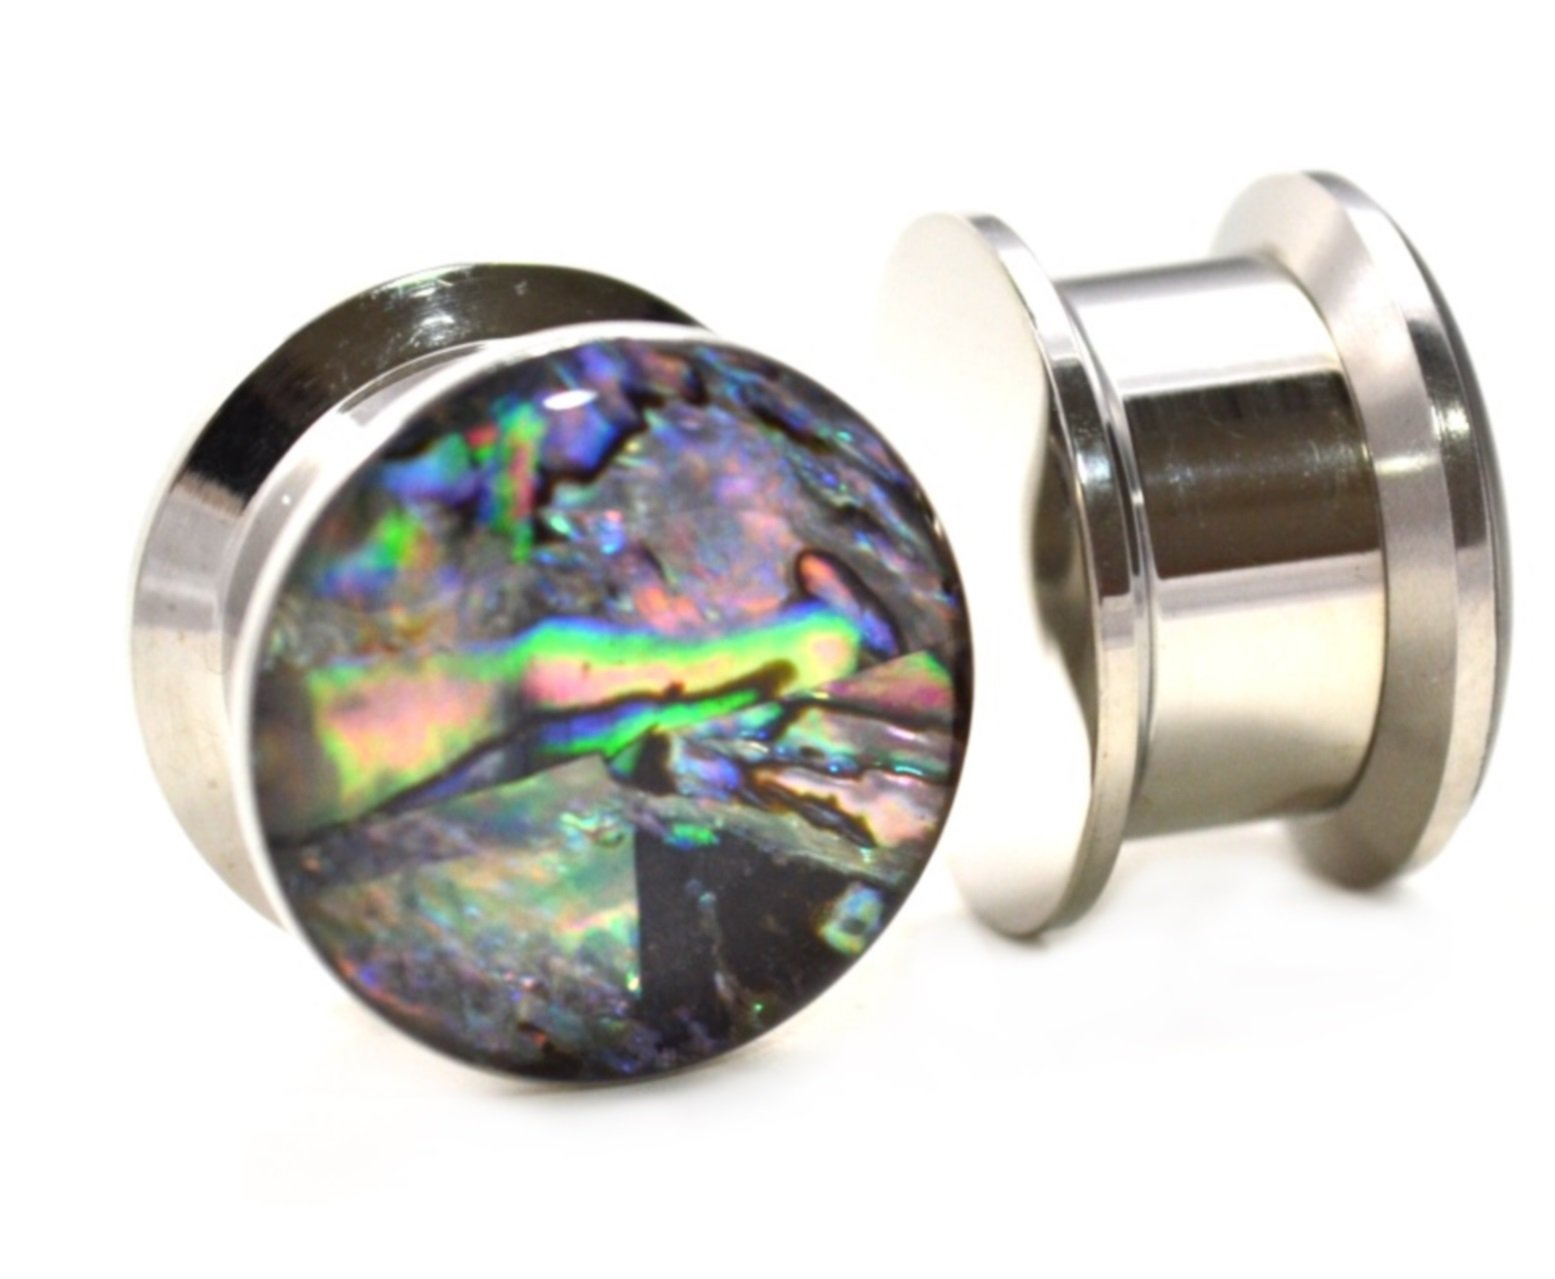 Pair (2) Wild Abalone Shell Inlay Ear Plugs Stainless Steel Screw Fit Stash Gauges - 9/16'' 14MM by BYB Plugs (Image #1)